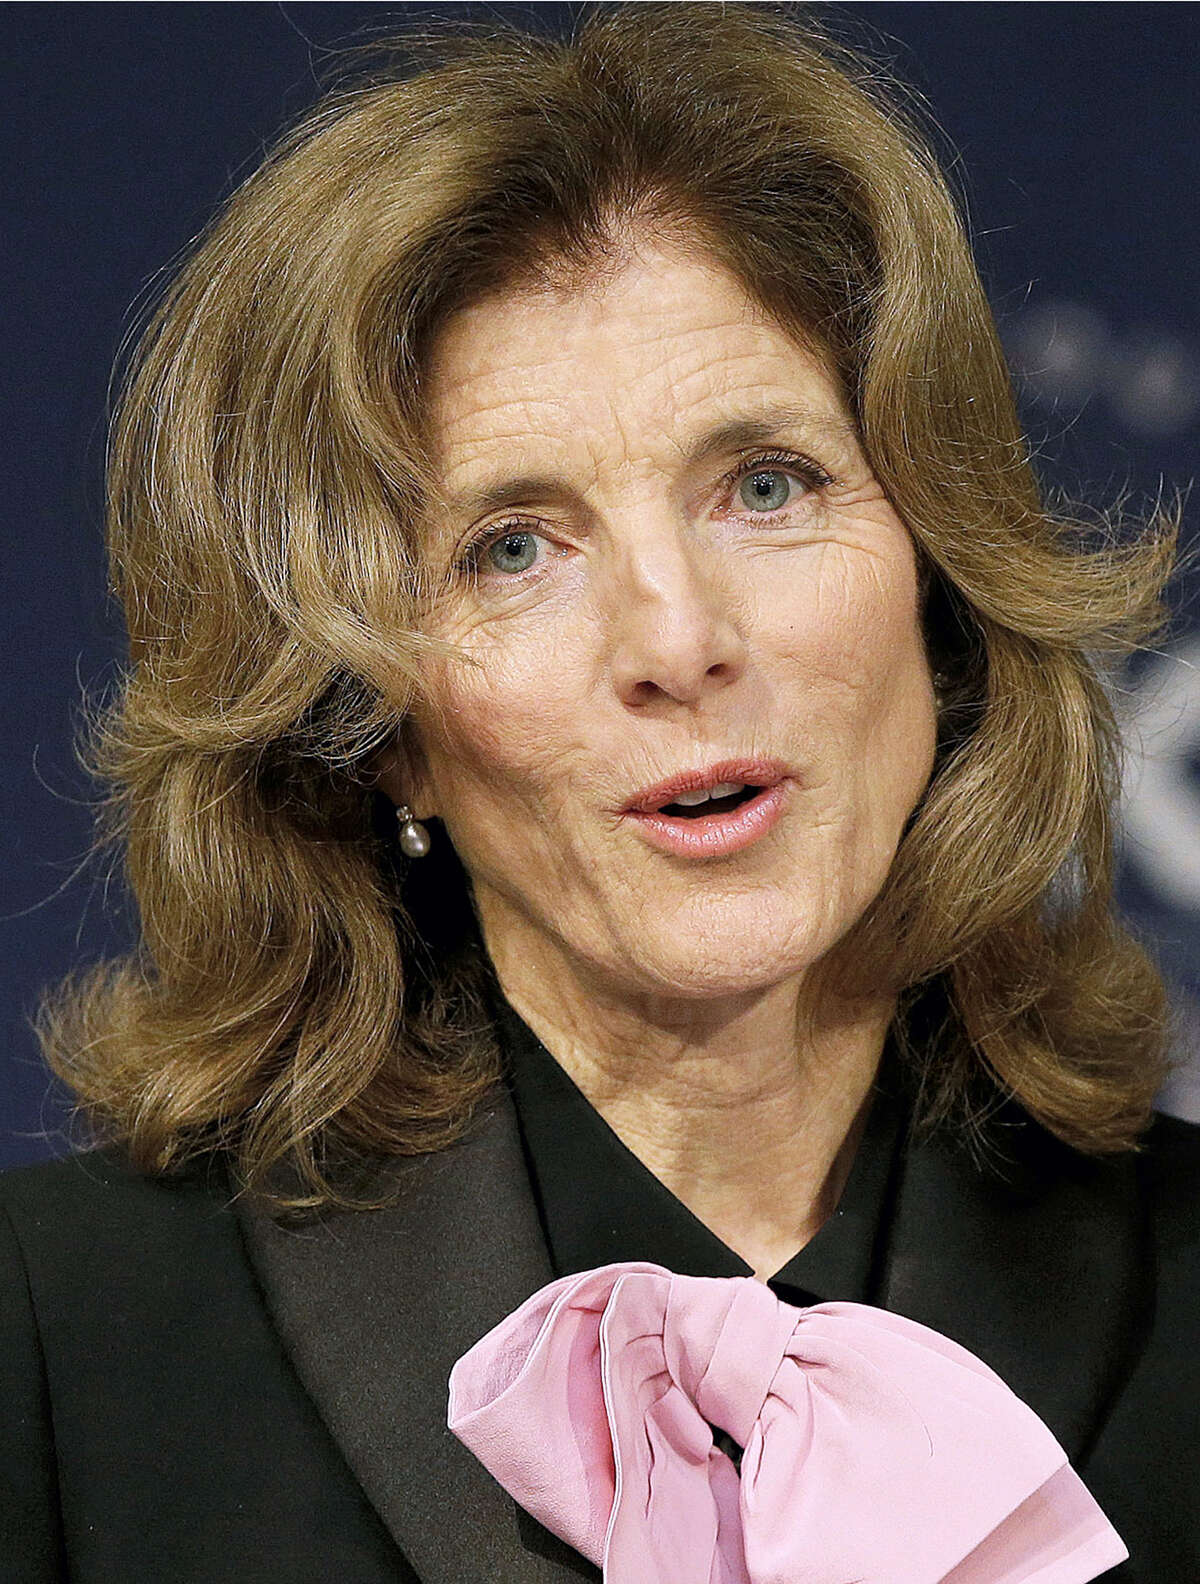 In this April 20 file photo, Caroline Kennedy, daughter of former President John F. Kennedy and former U.S. Ambassador to Japan, speaks about her father as she kicks off the John F. Kennedy Centennial Symposium at Harvard's Kennedy School of Government in Cambridge, Mass. John F. Kennedy didn't make it even halfway to 100 — a milestone he might have celebrated May 29, 2017 — but the slain U.S. president's legacy is being lived out by his descendants.